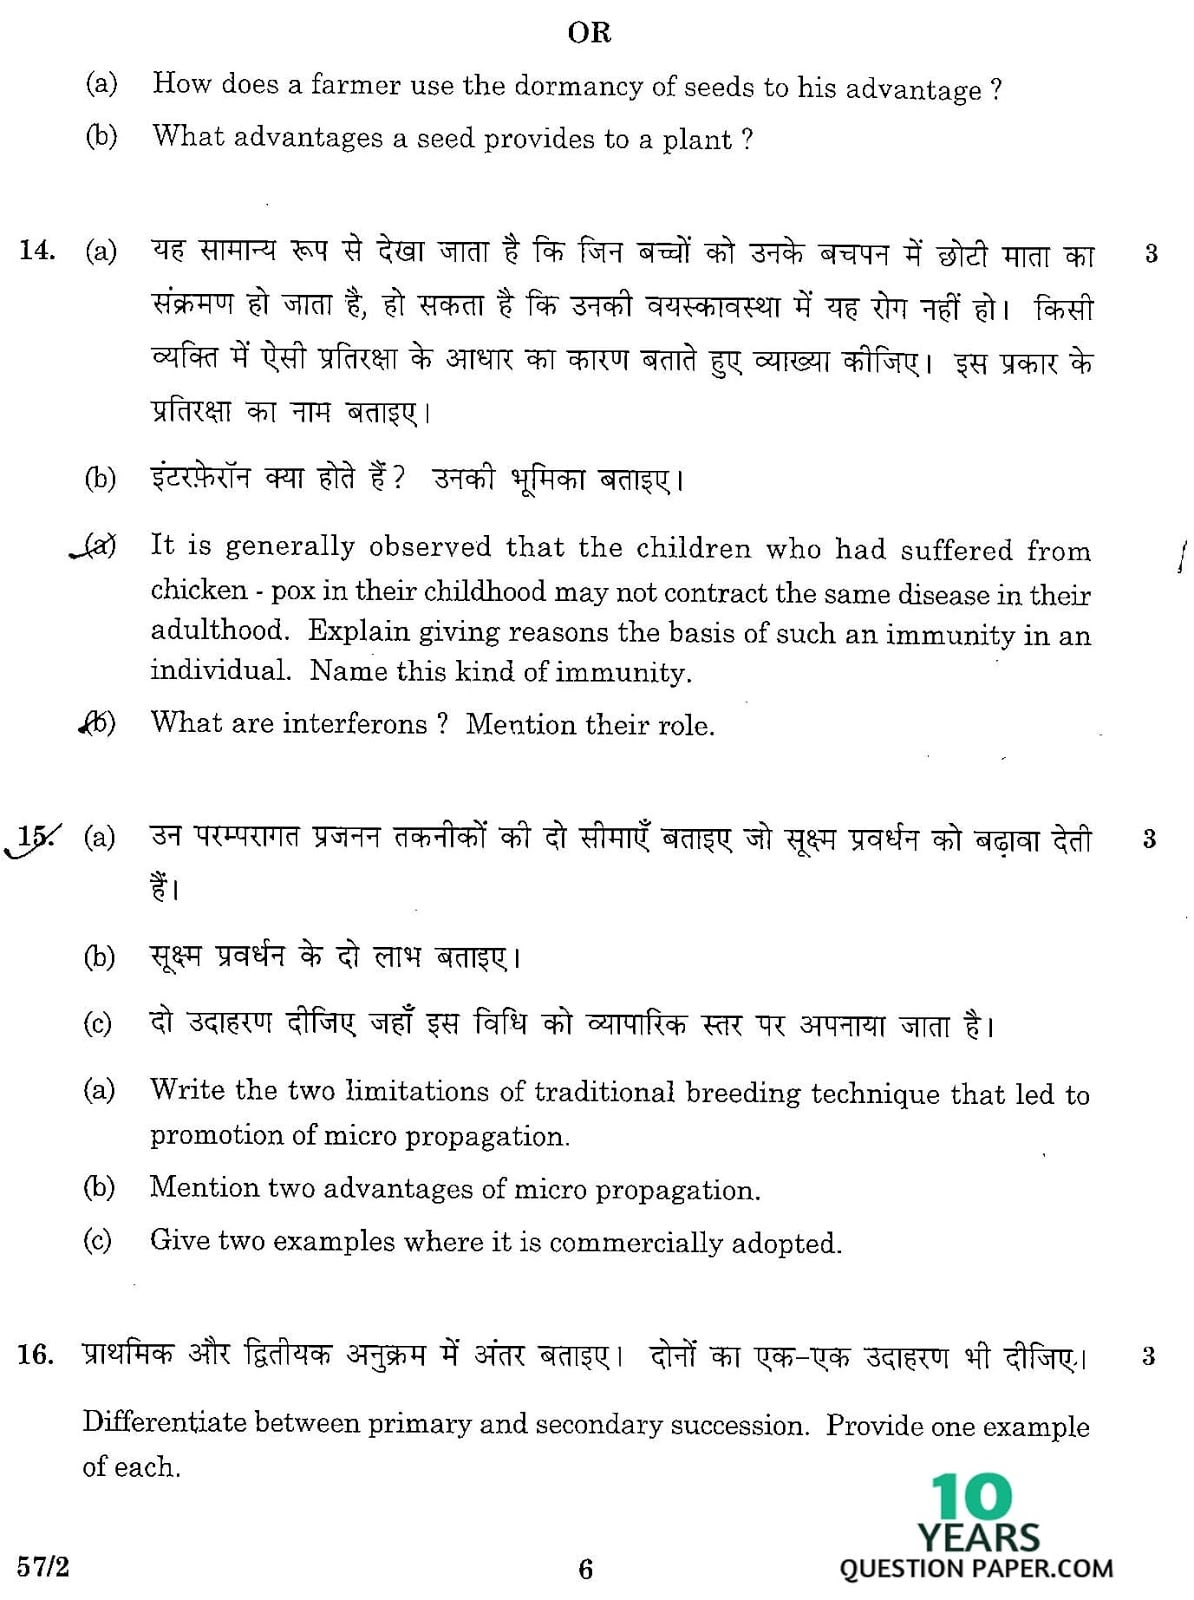 CBSE Class 12 Biology 2016 Question Paper